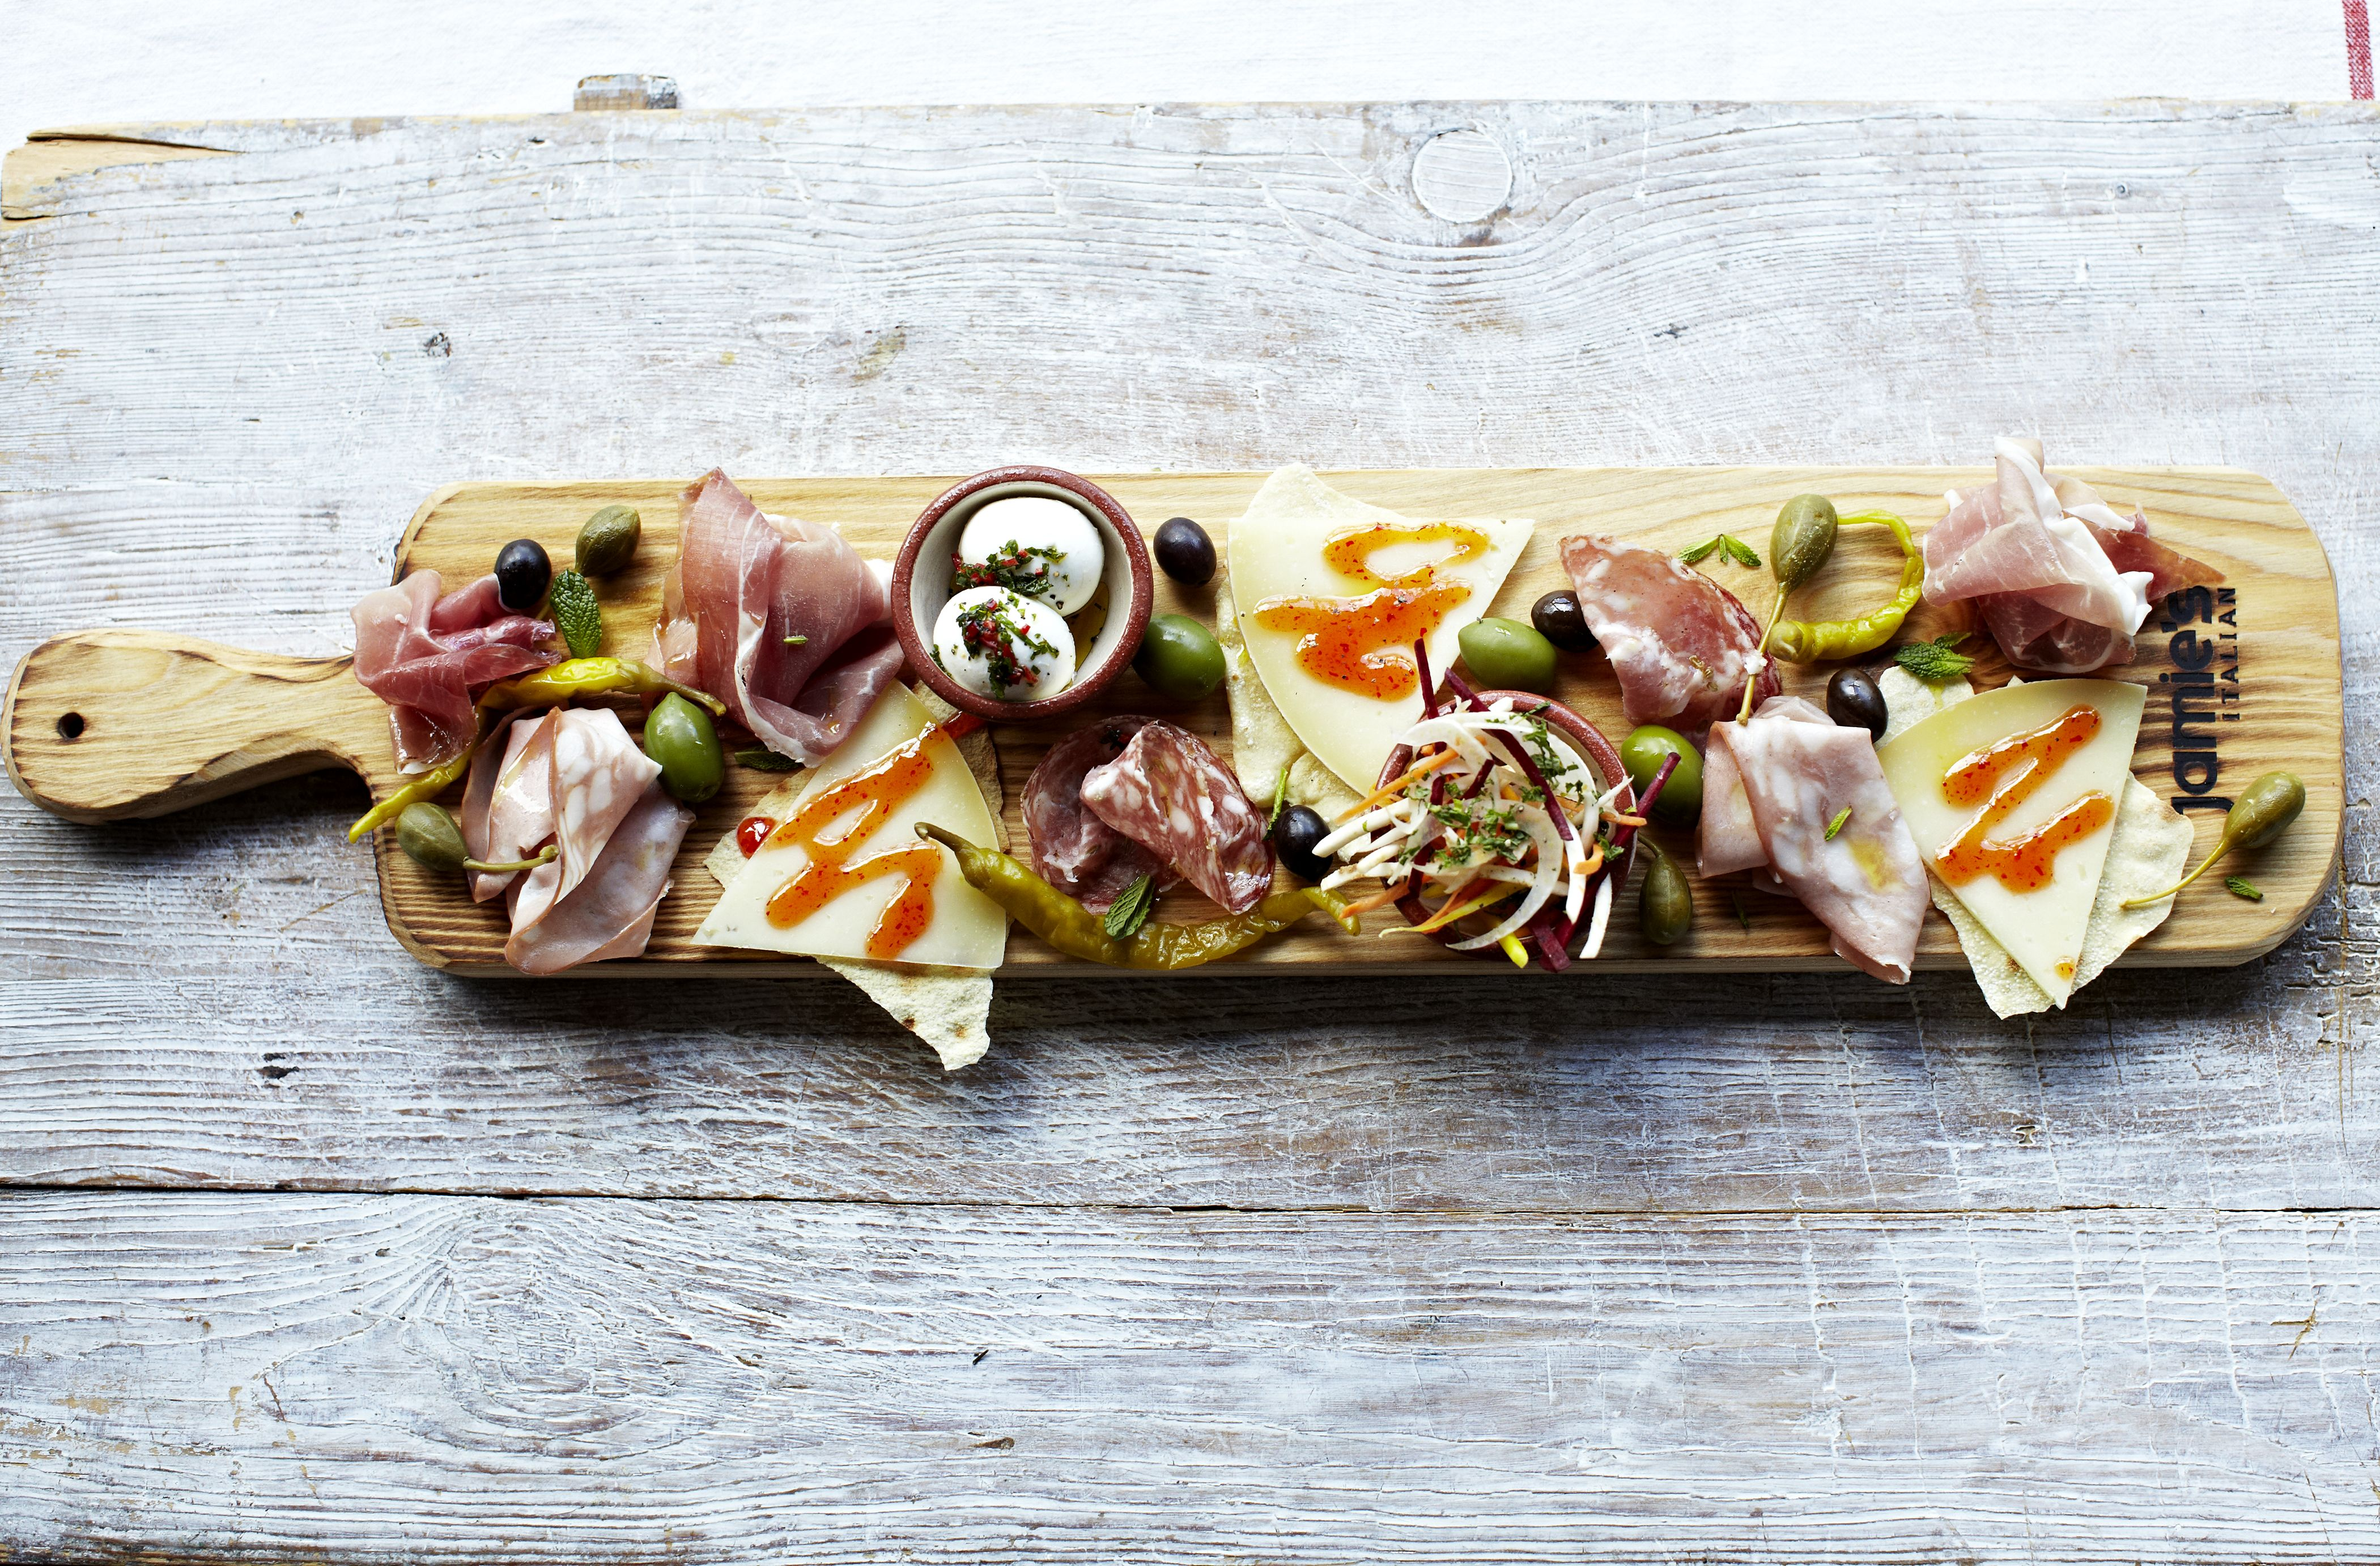 Jamie's Italian Meat and Cheese Charcuterie Plank